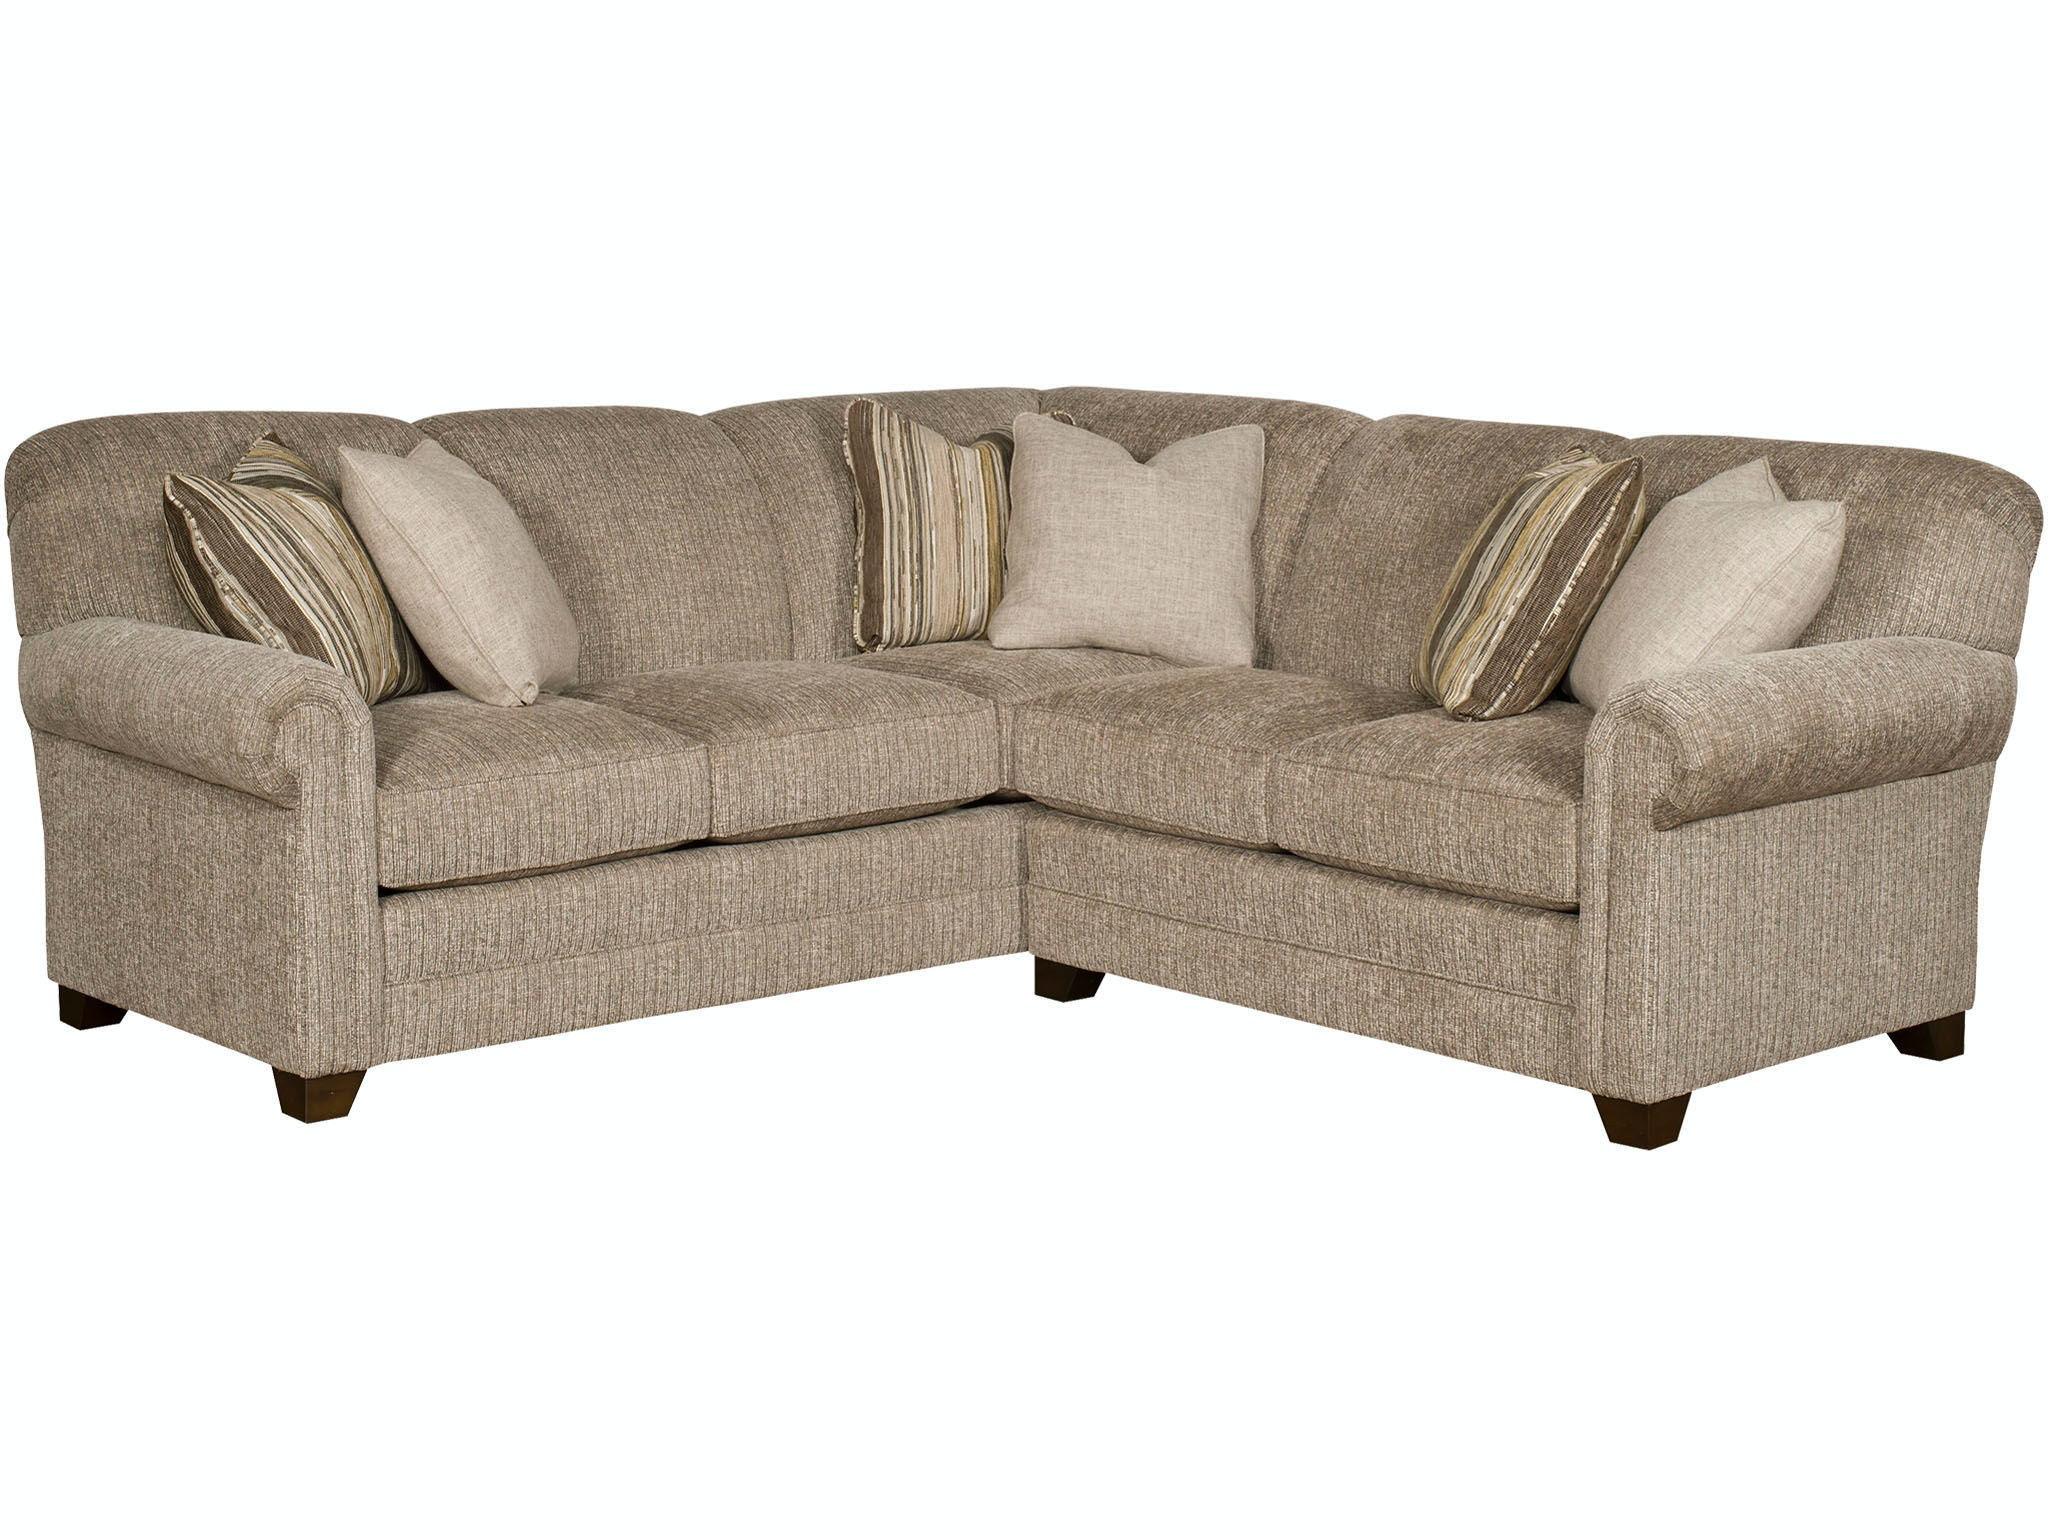 Beau King Hickory Living Room Annika Sectional